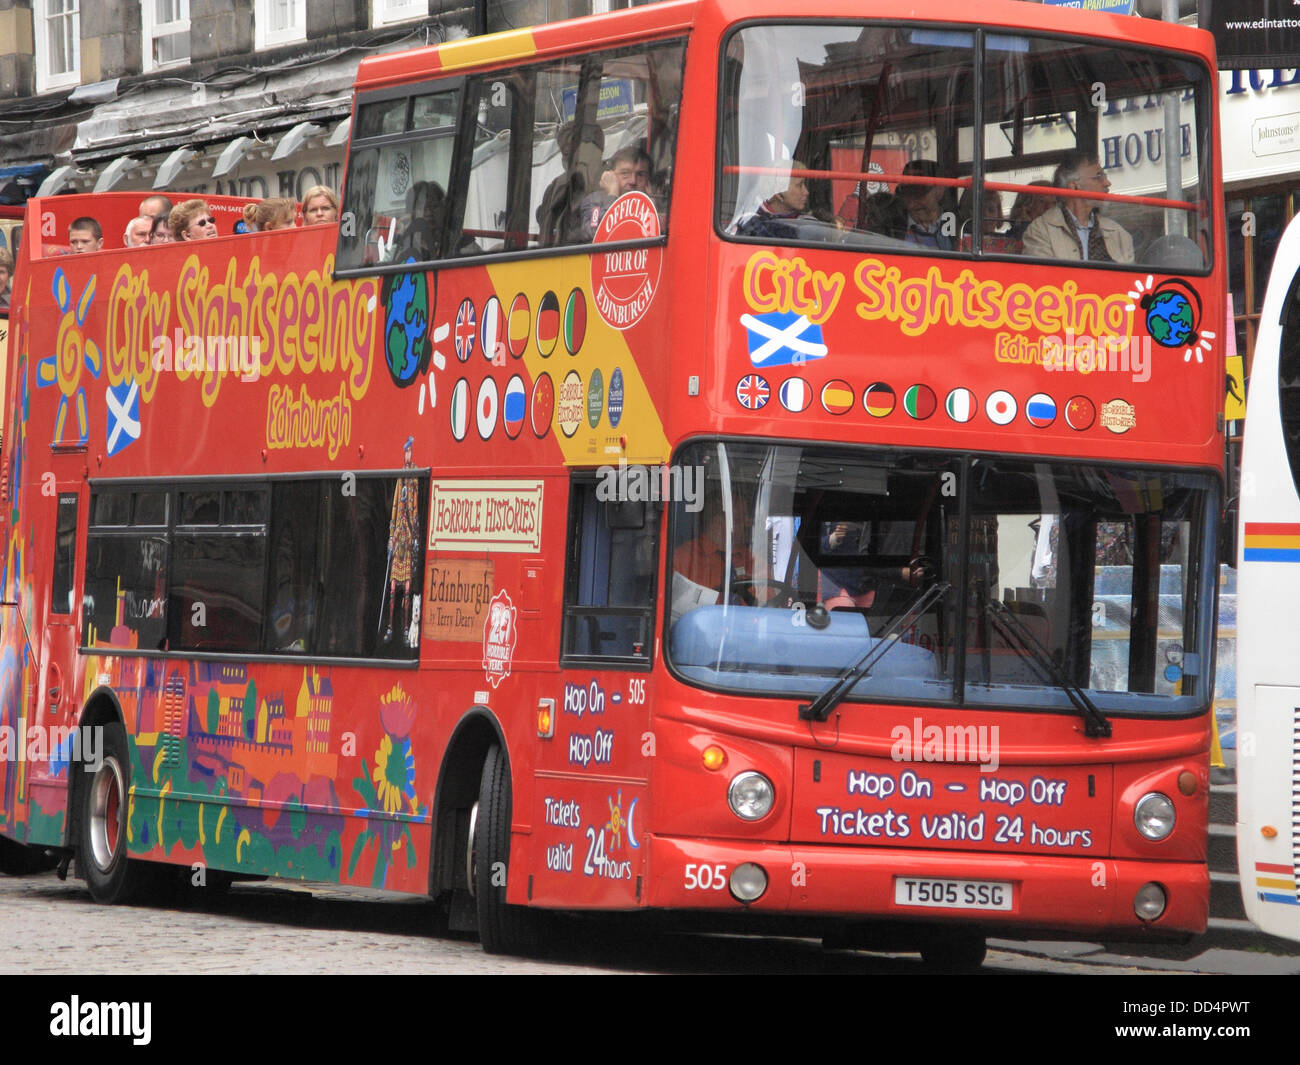 Red Doubledecker Sightseeing Tourist Bus, Lawnmarket, The Royal Mile, Edinburgh, Scotland, UK - Stock Image